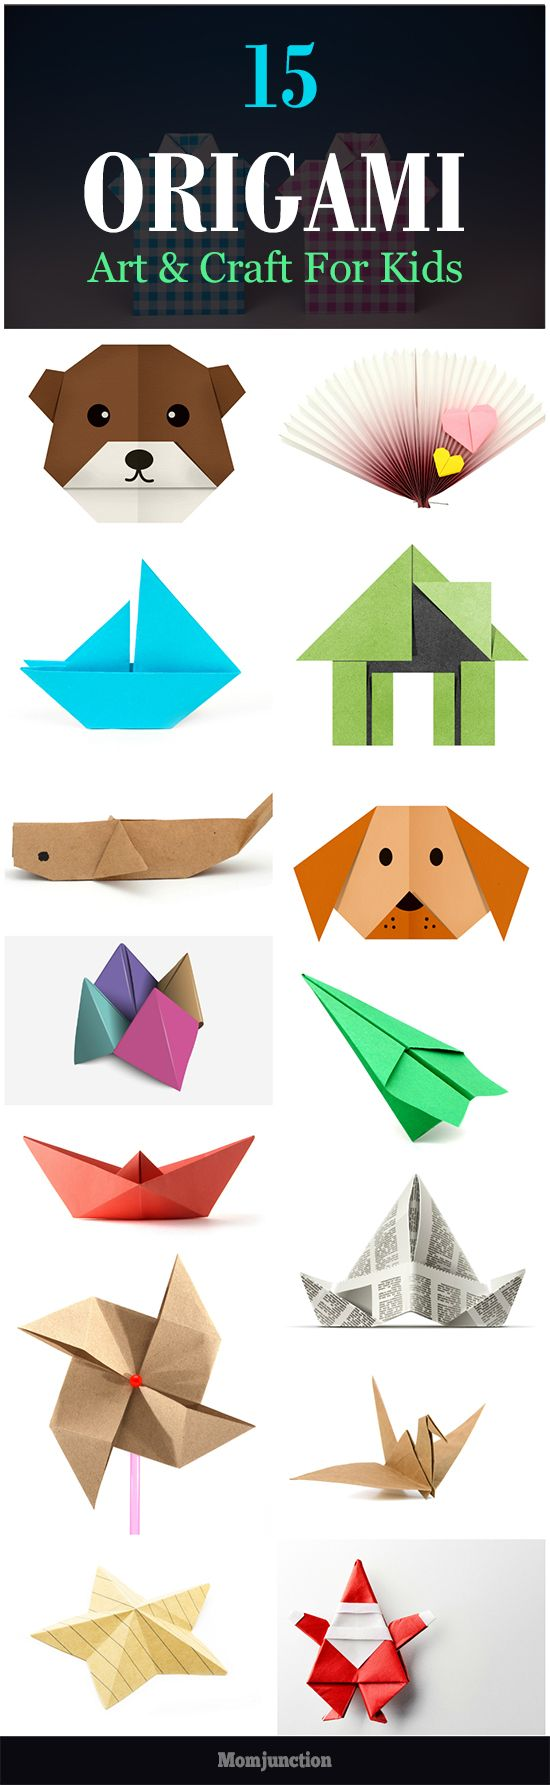 Is your child fond of making origami crafts? Are you looking for some origami tutorials for your creative child? Well, check out 15 origami crafts for kids.